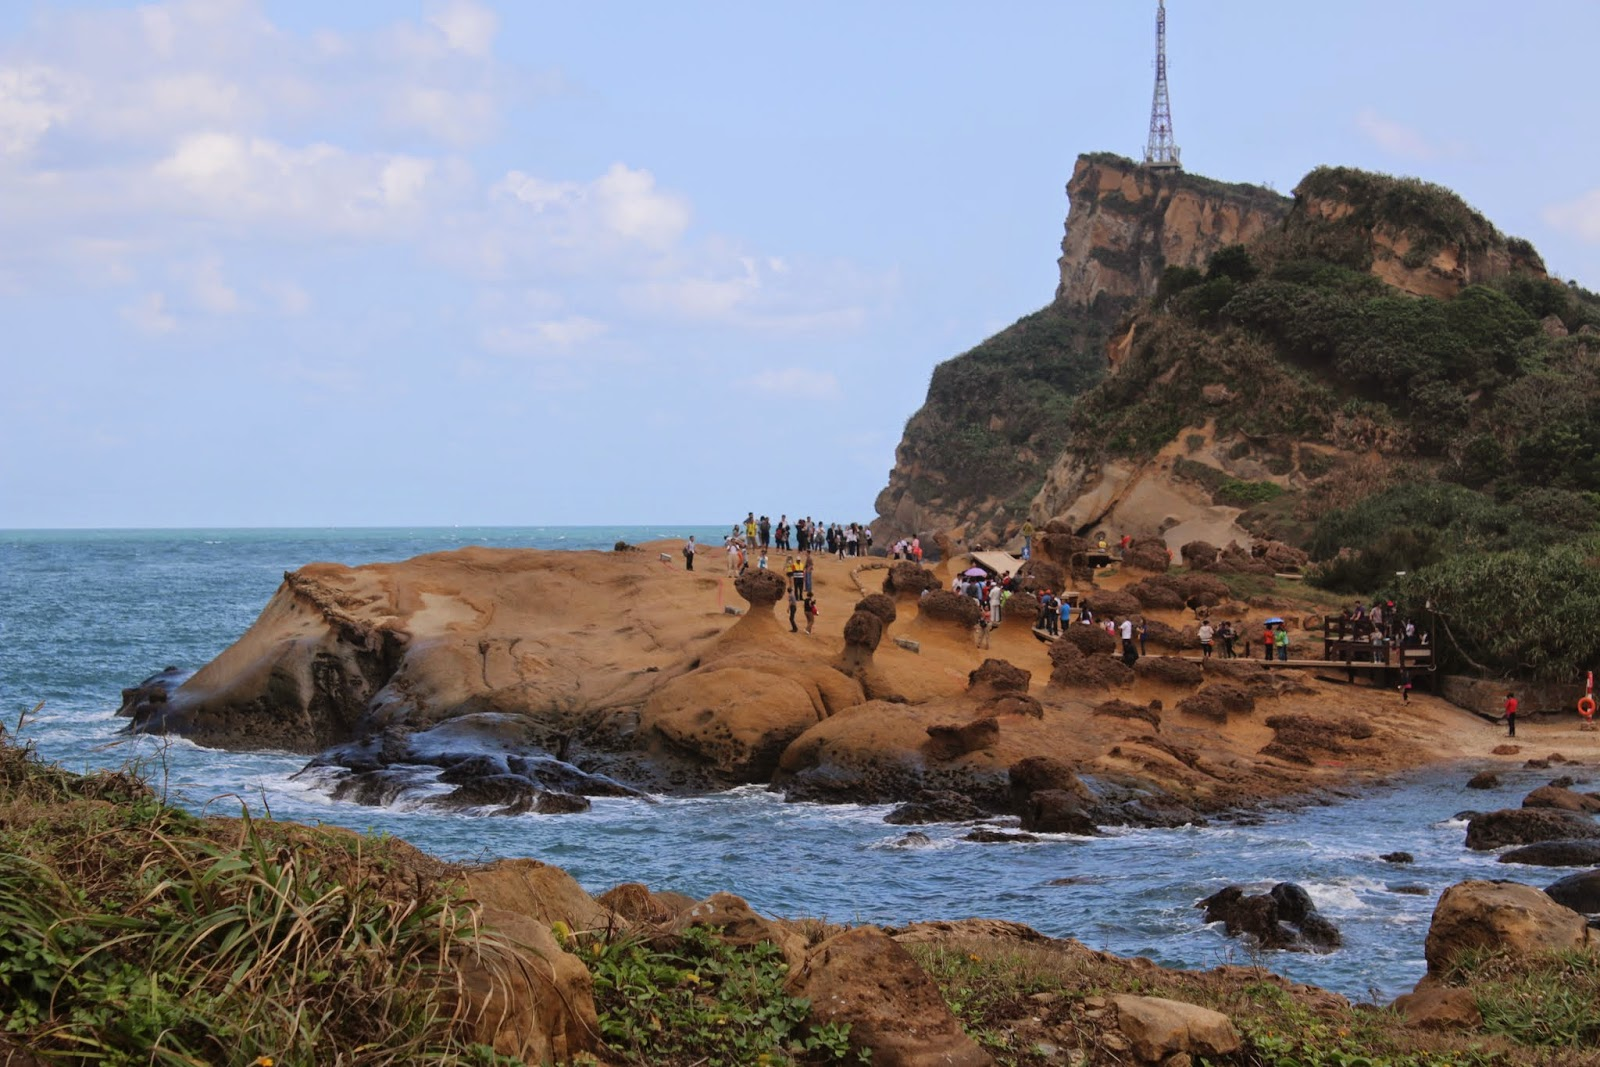 Breathtaking sea view with the rocks evolution at Yeh Liu Geopark in Taiwan